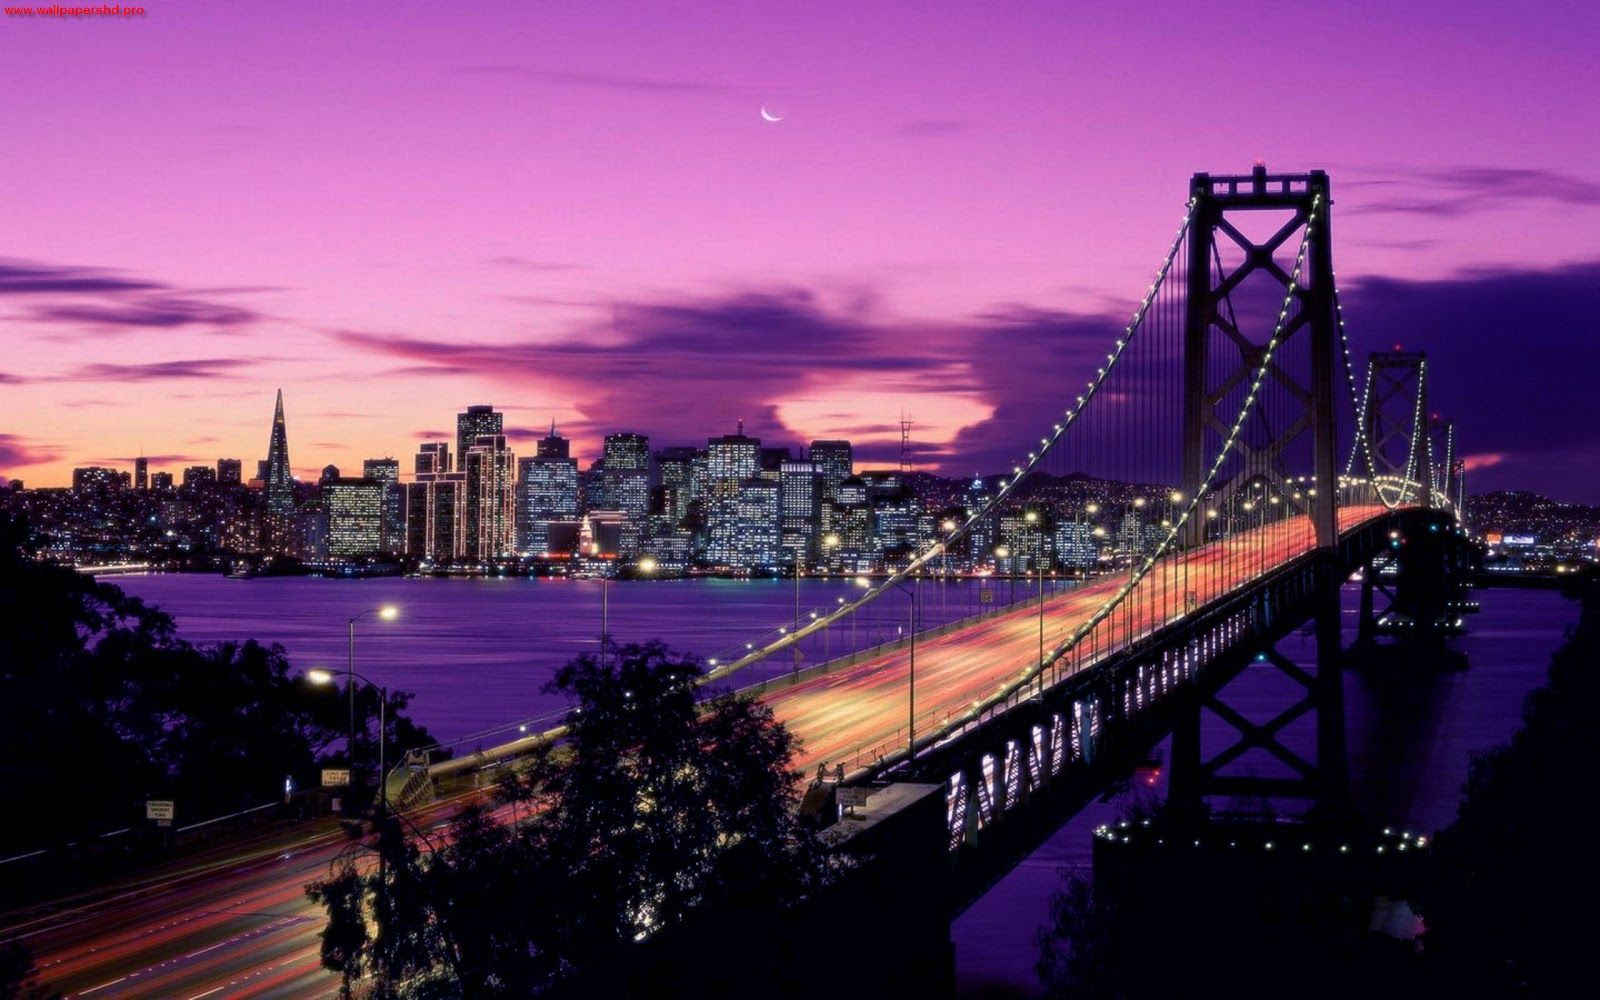 Car Desktop Wallpaper Hd 3d Full Screen Free Download Download San Francisco At Night Wallpaper Gallery